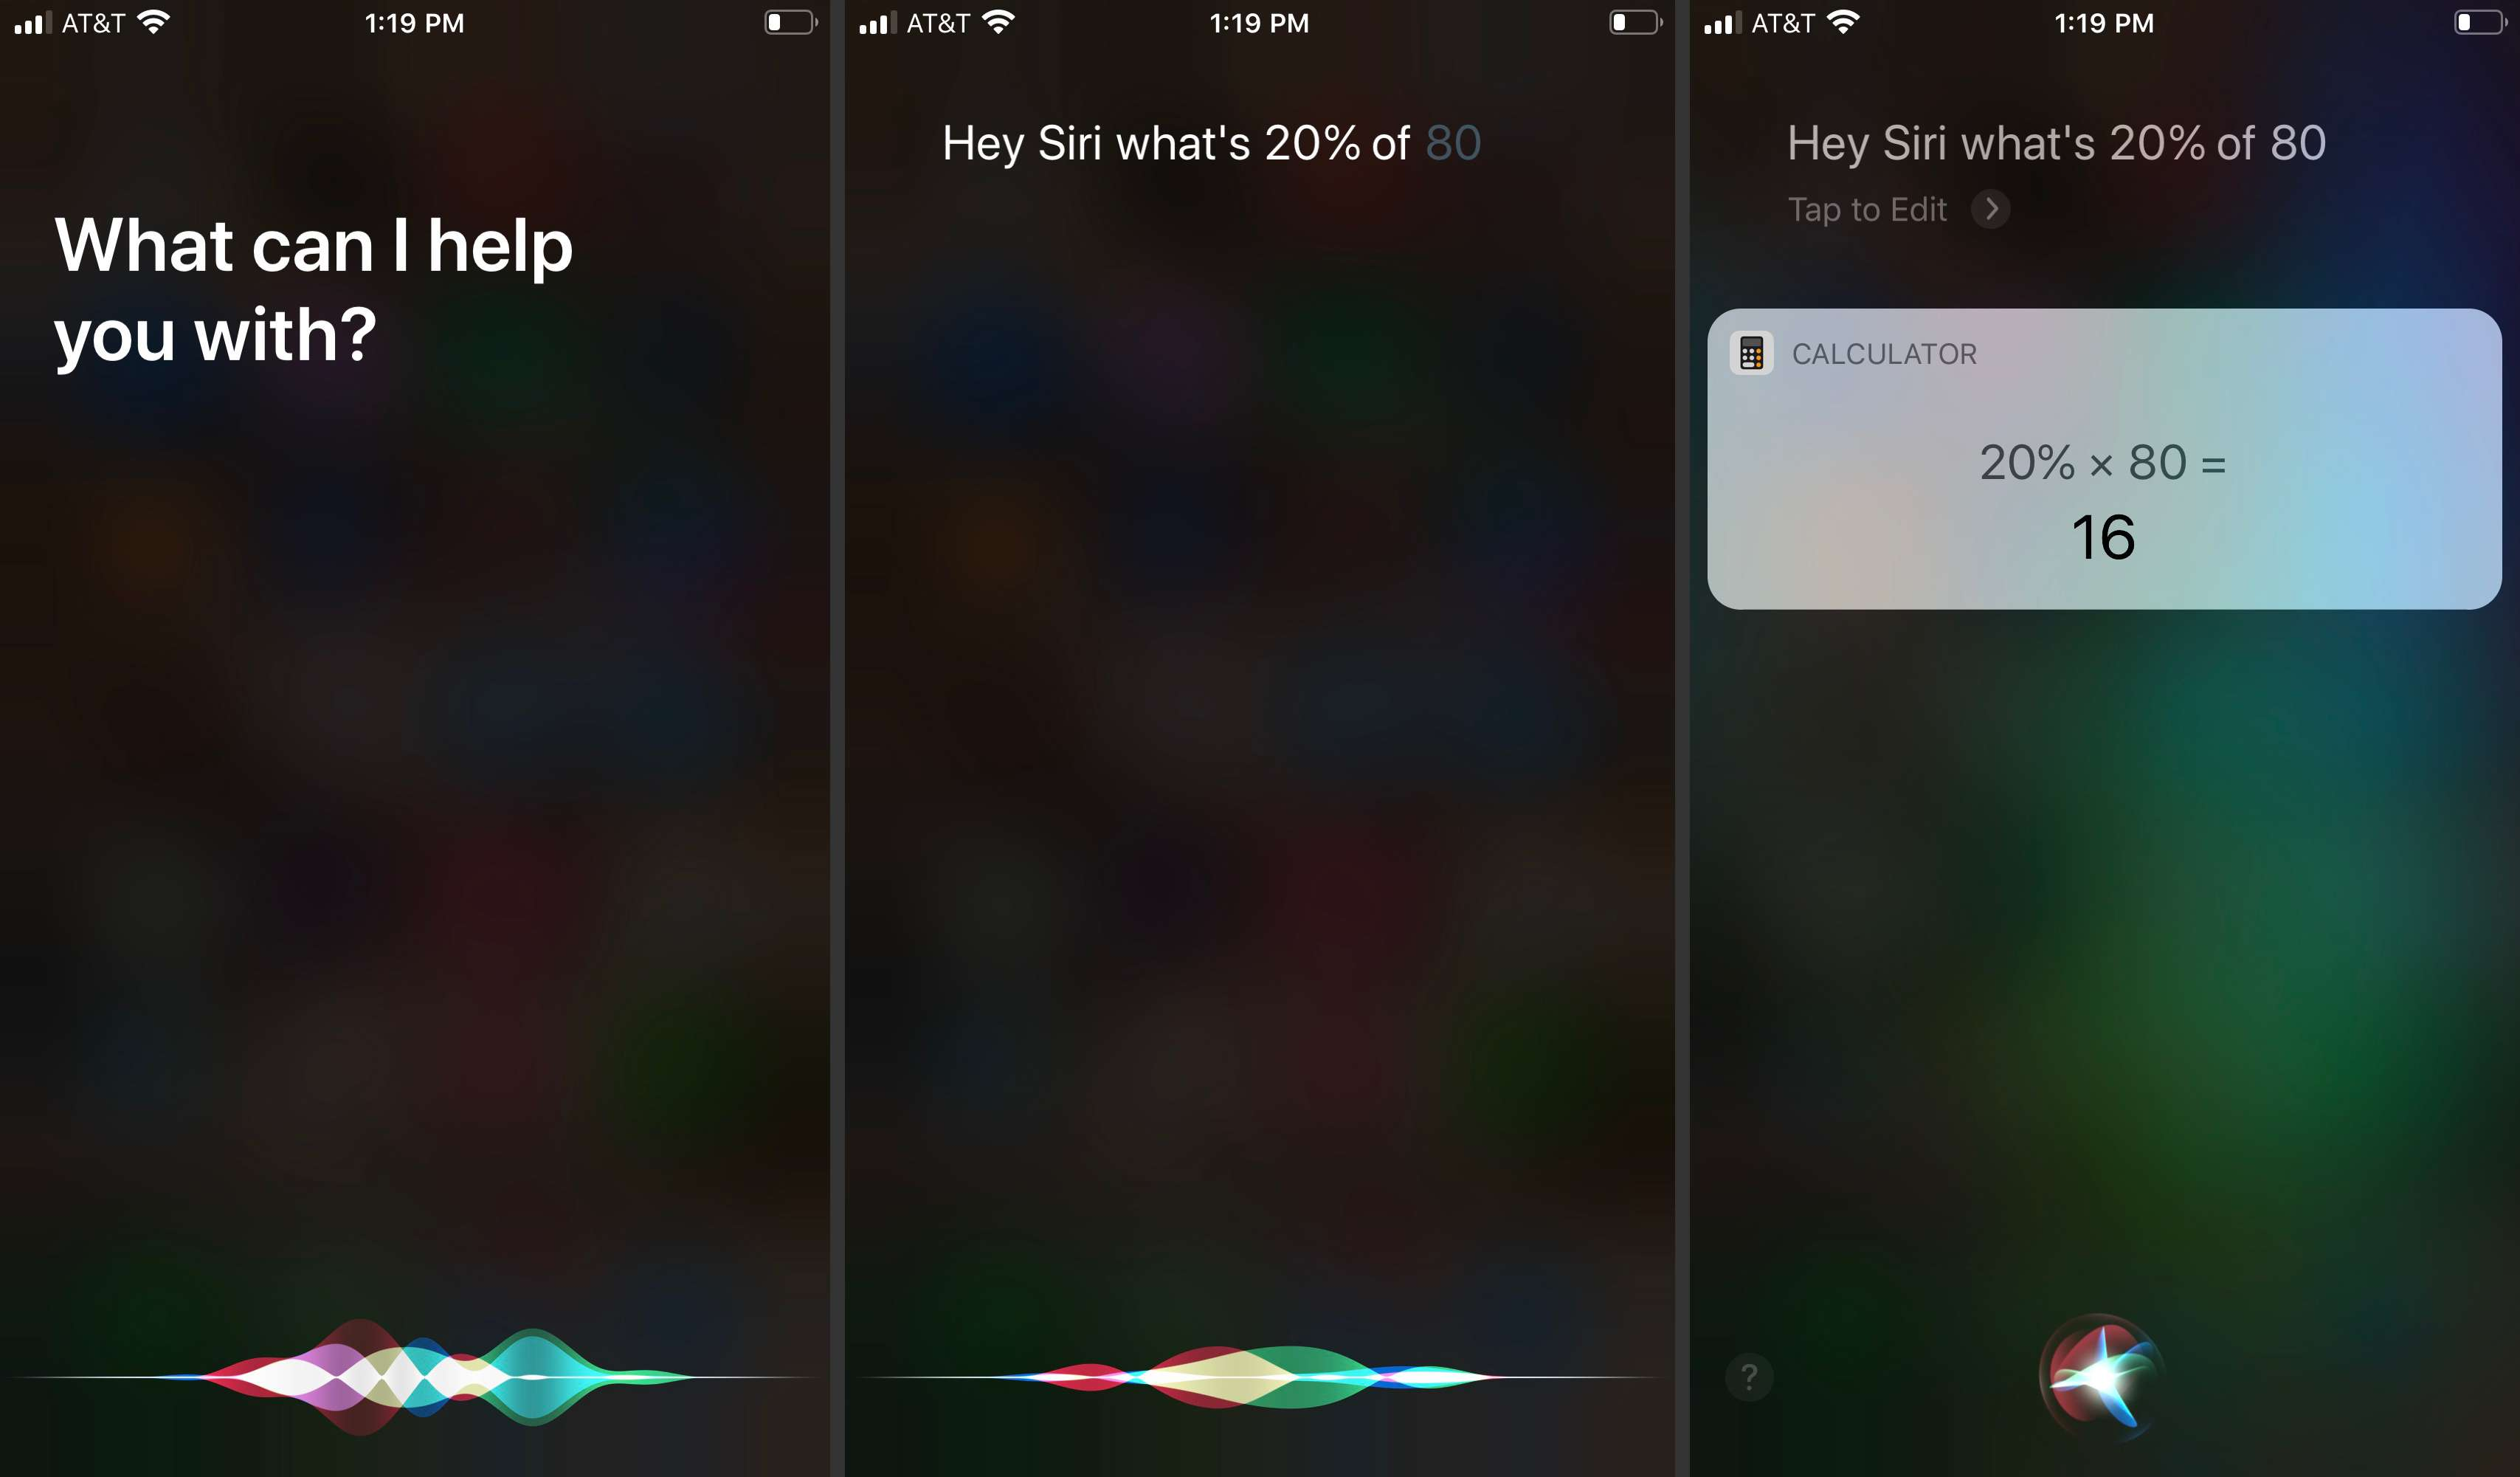 Using Siri commands with AirPods to make a calculation